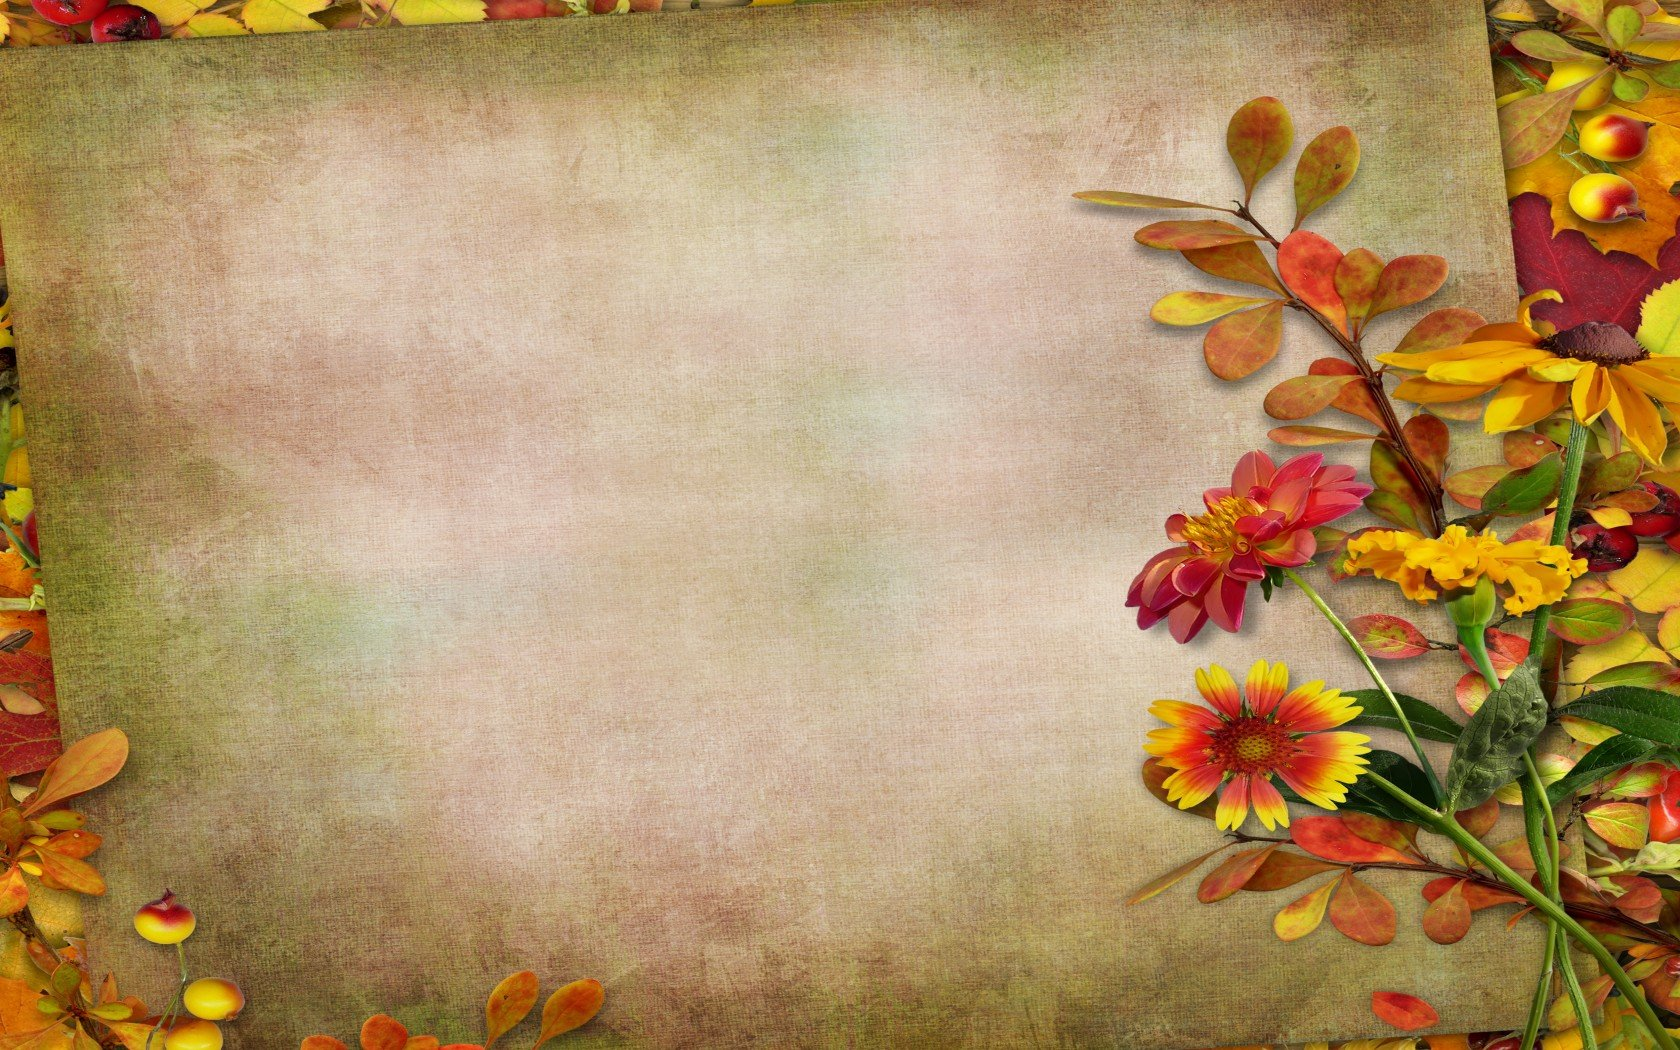 38 Autumn Flowers Desktop Wallpaper On Wallpapersafari